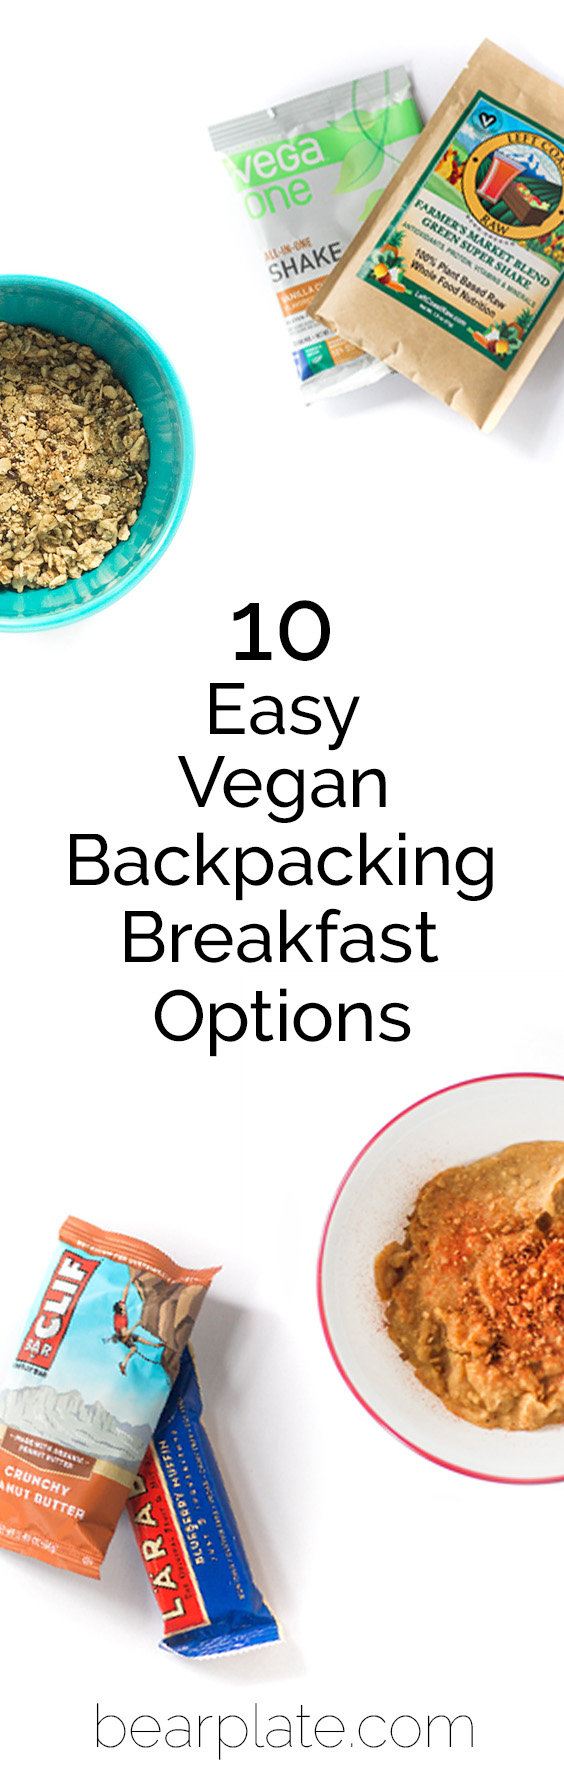 10 Easy Vegan Backpacking Breakfast Options! Breakfast on the trail doesn't need to be complicated! #vegan #plantbased #backpacking #bearplate